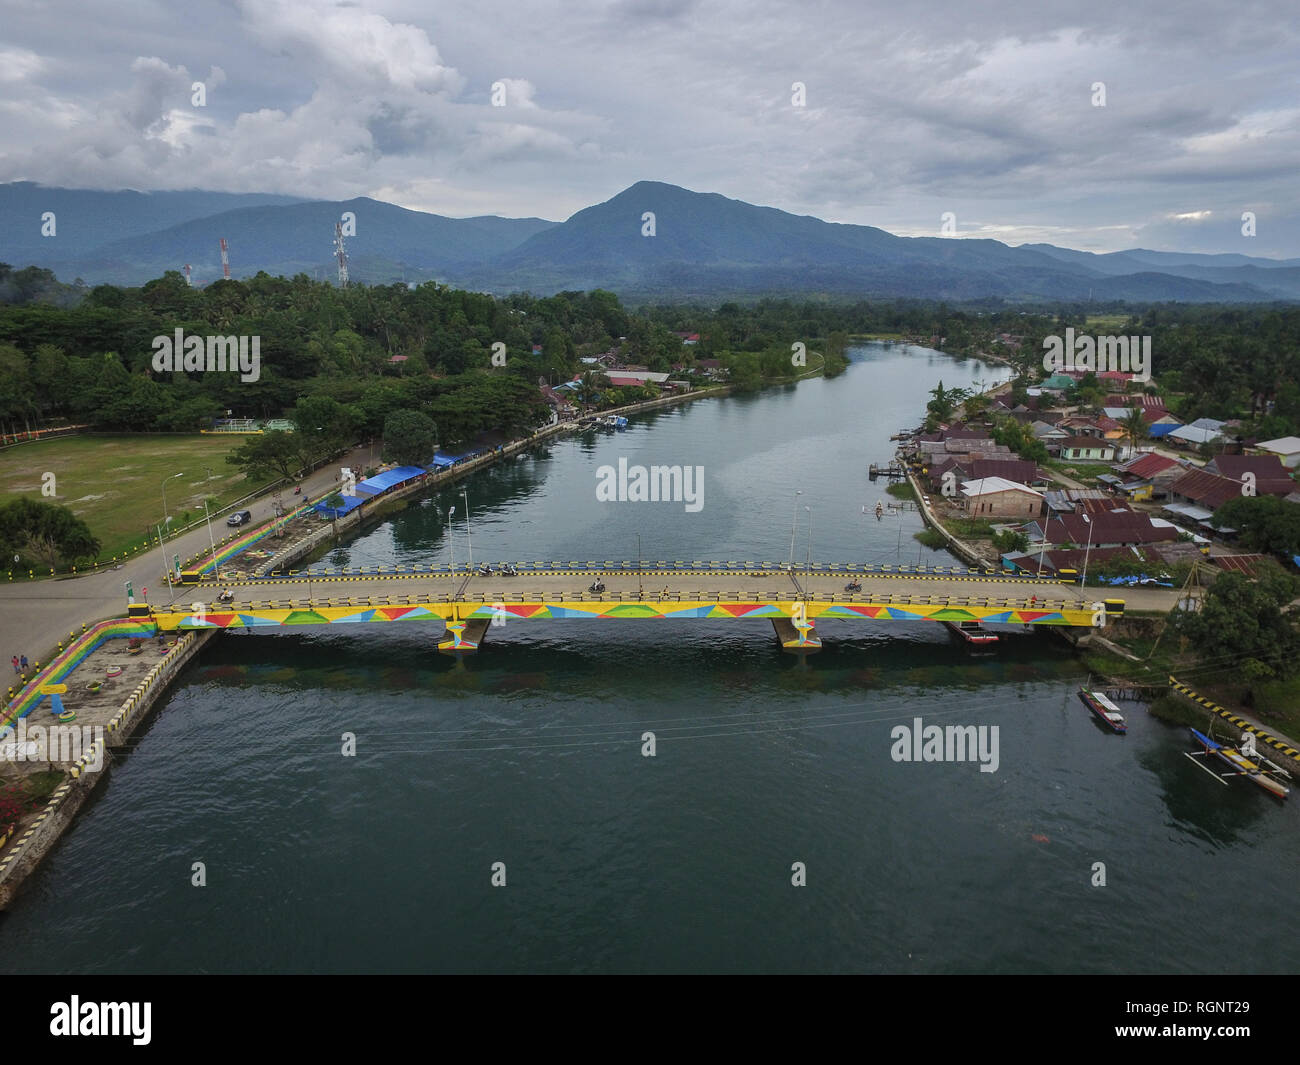 The landscape of Malili River with Verbeek mountain on the background. Malili is a city in South Sulawesi which rely on fishery and agriculture. - Stock Image